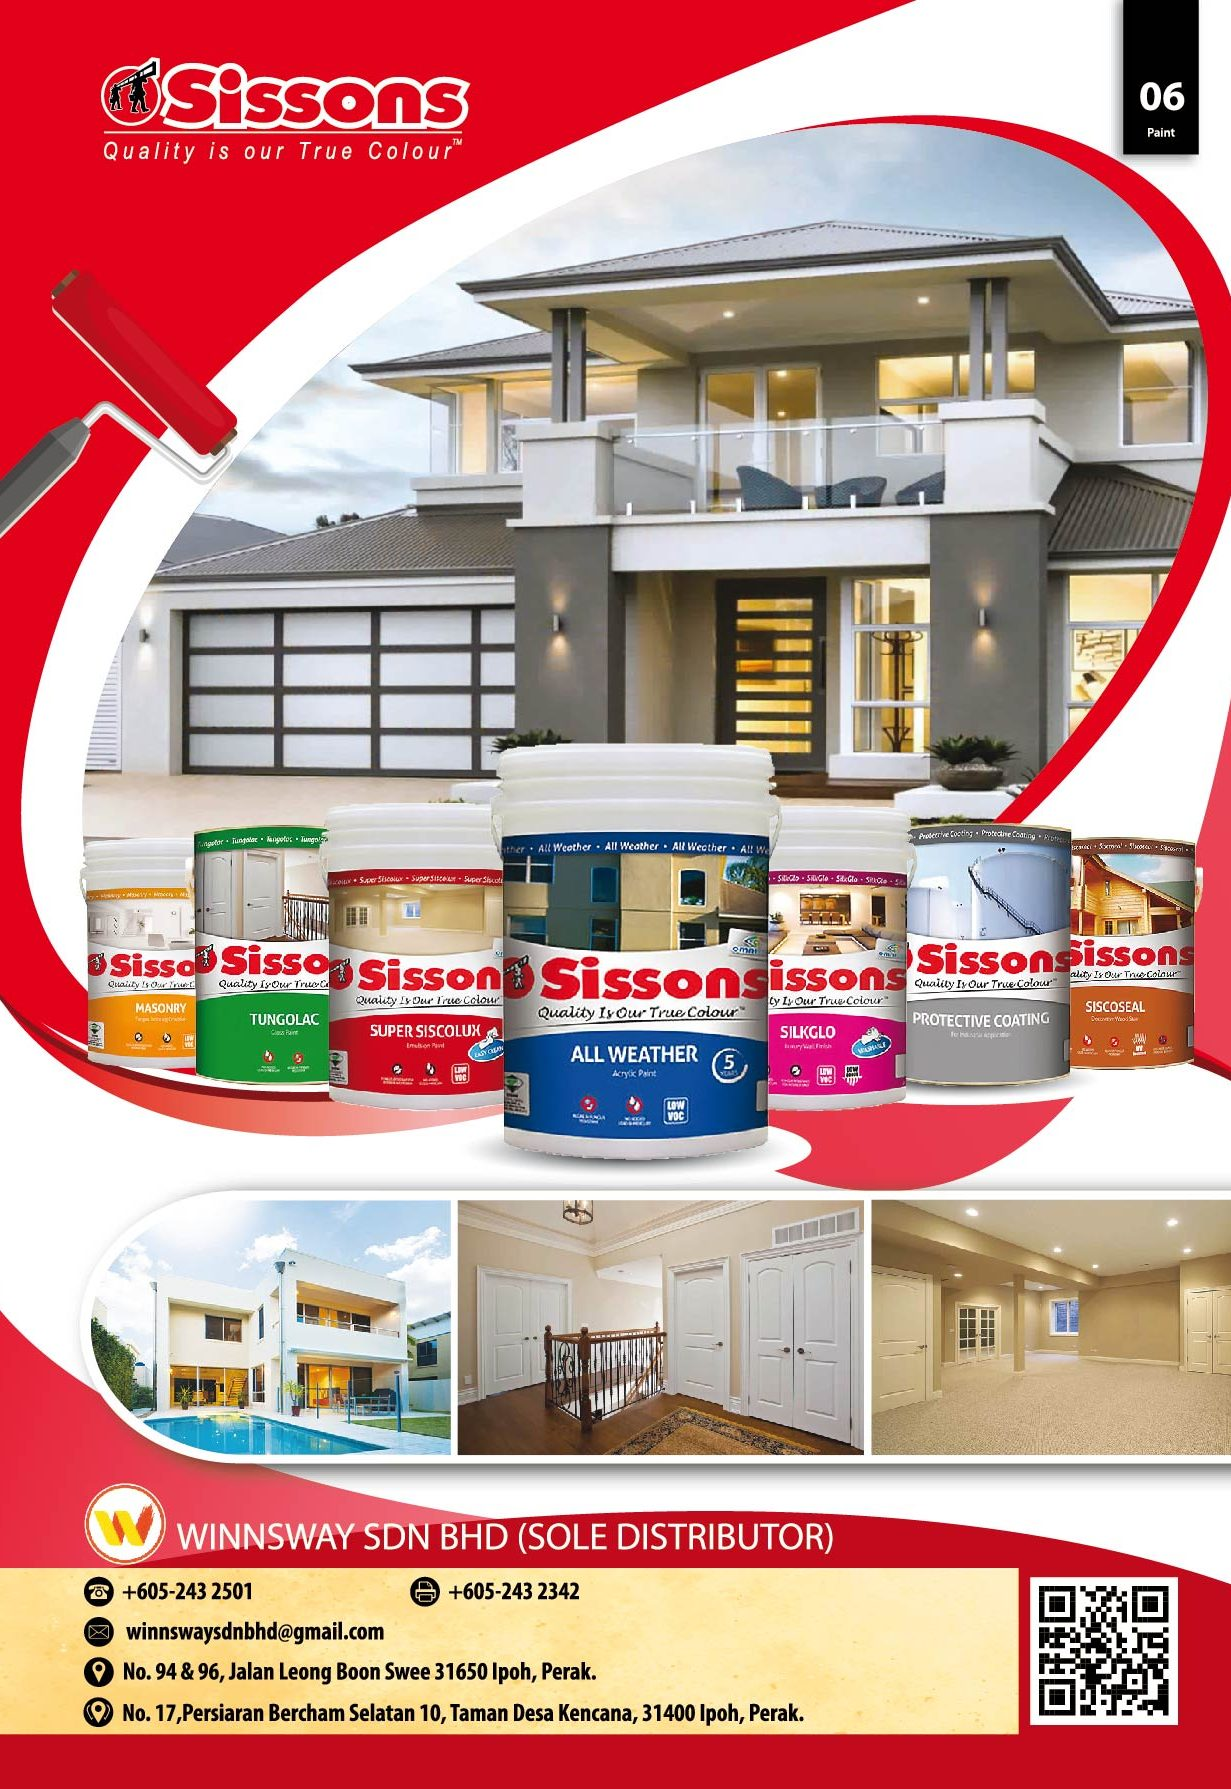 Sissons Paint Winnsway Sdn Bhd Wospace Home Living Magazine